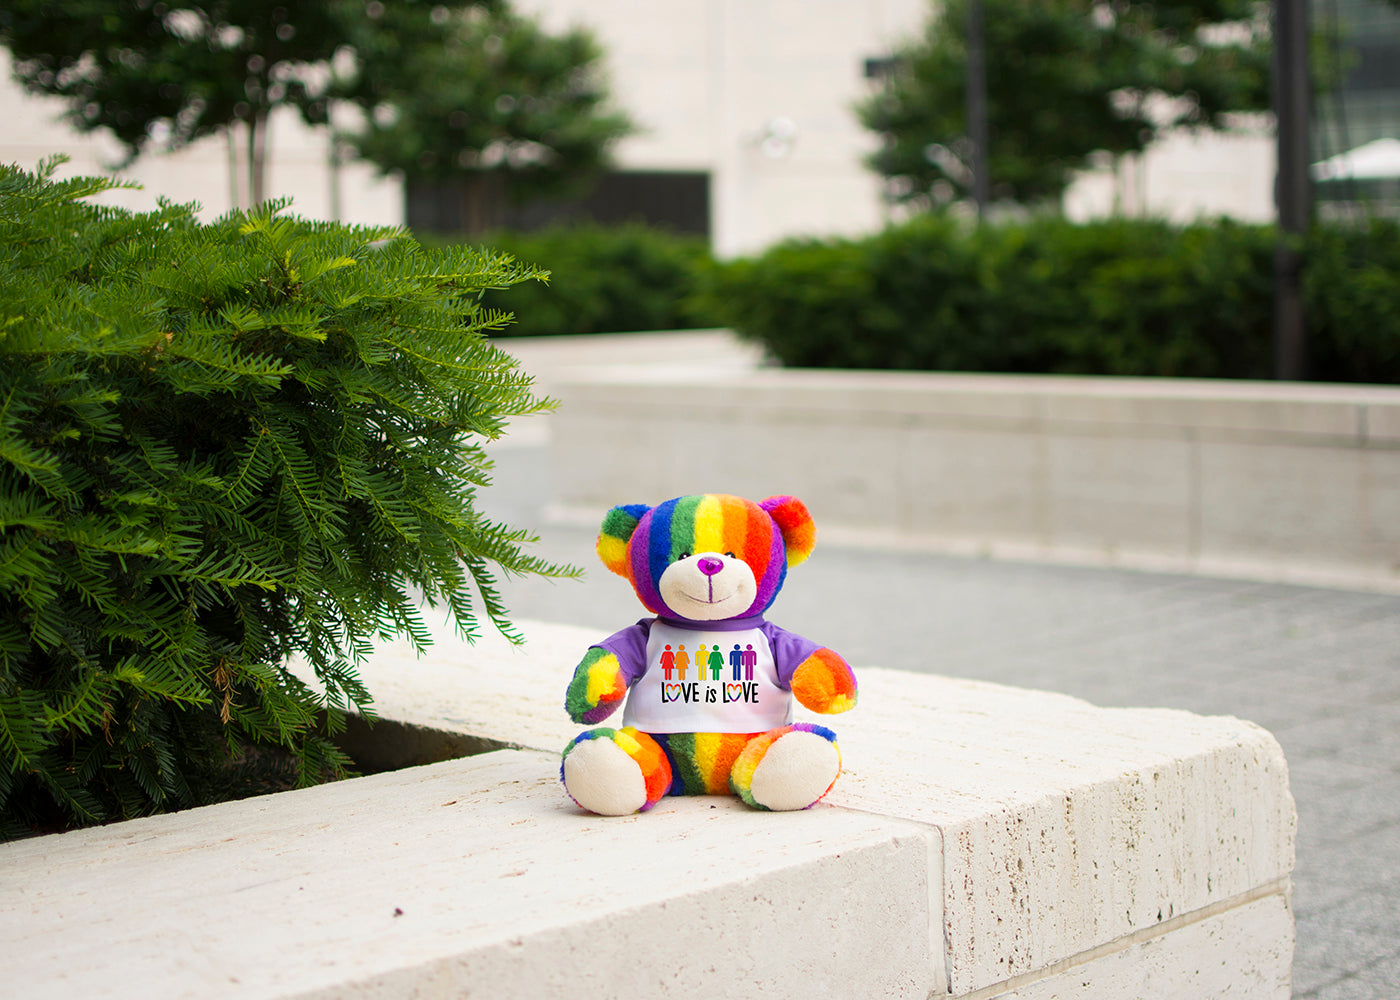 Bear Buggy®'s Totally Pride Teddy bear photographed in Damrosch Park at the Lincoln Center in Midtown Manhattan, NY. Photographed to celebrate Pride.